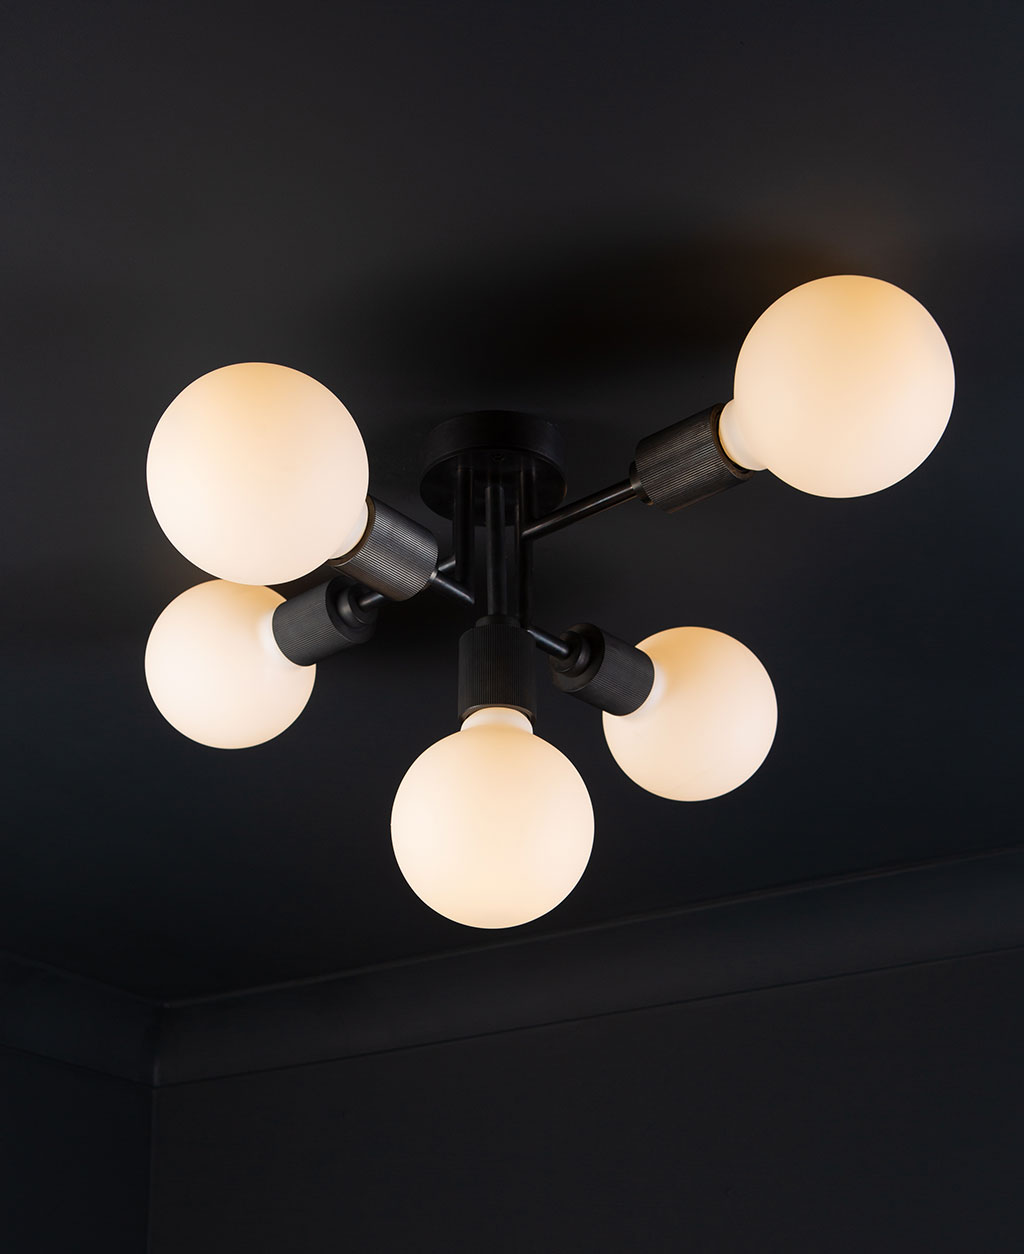 connaught black ceiling light with lit frosted bulbs against black ceiling